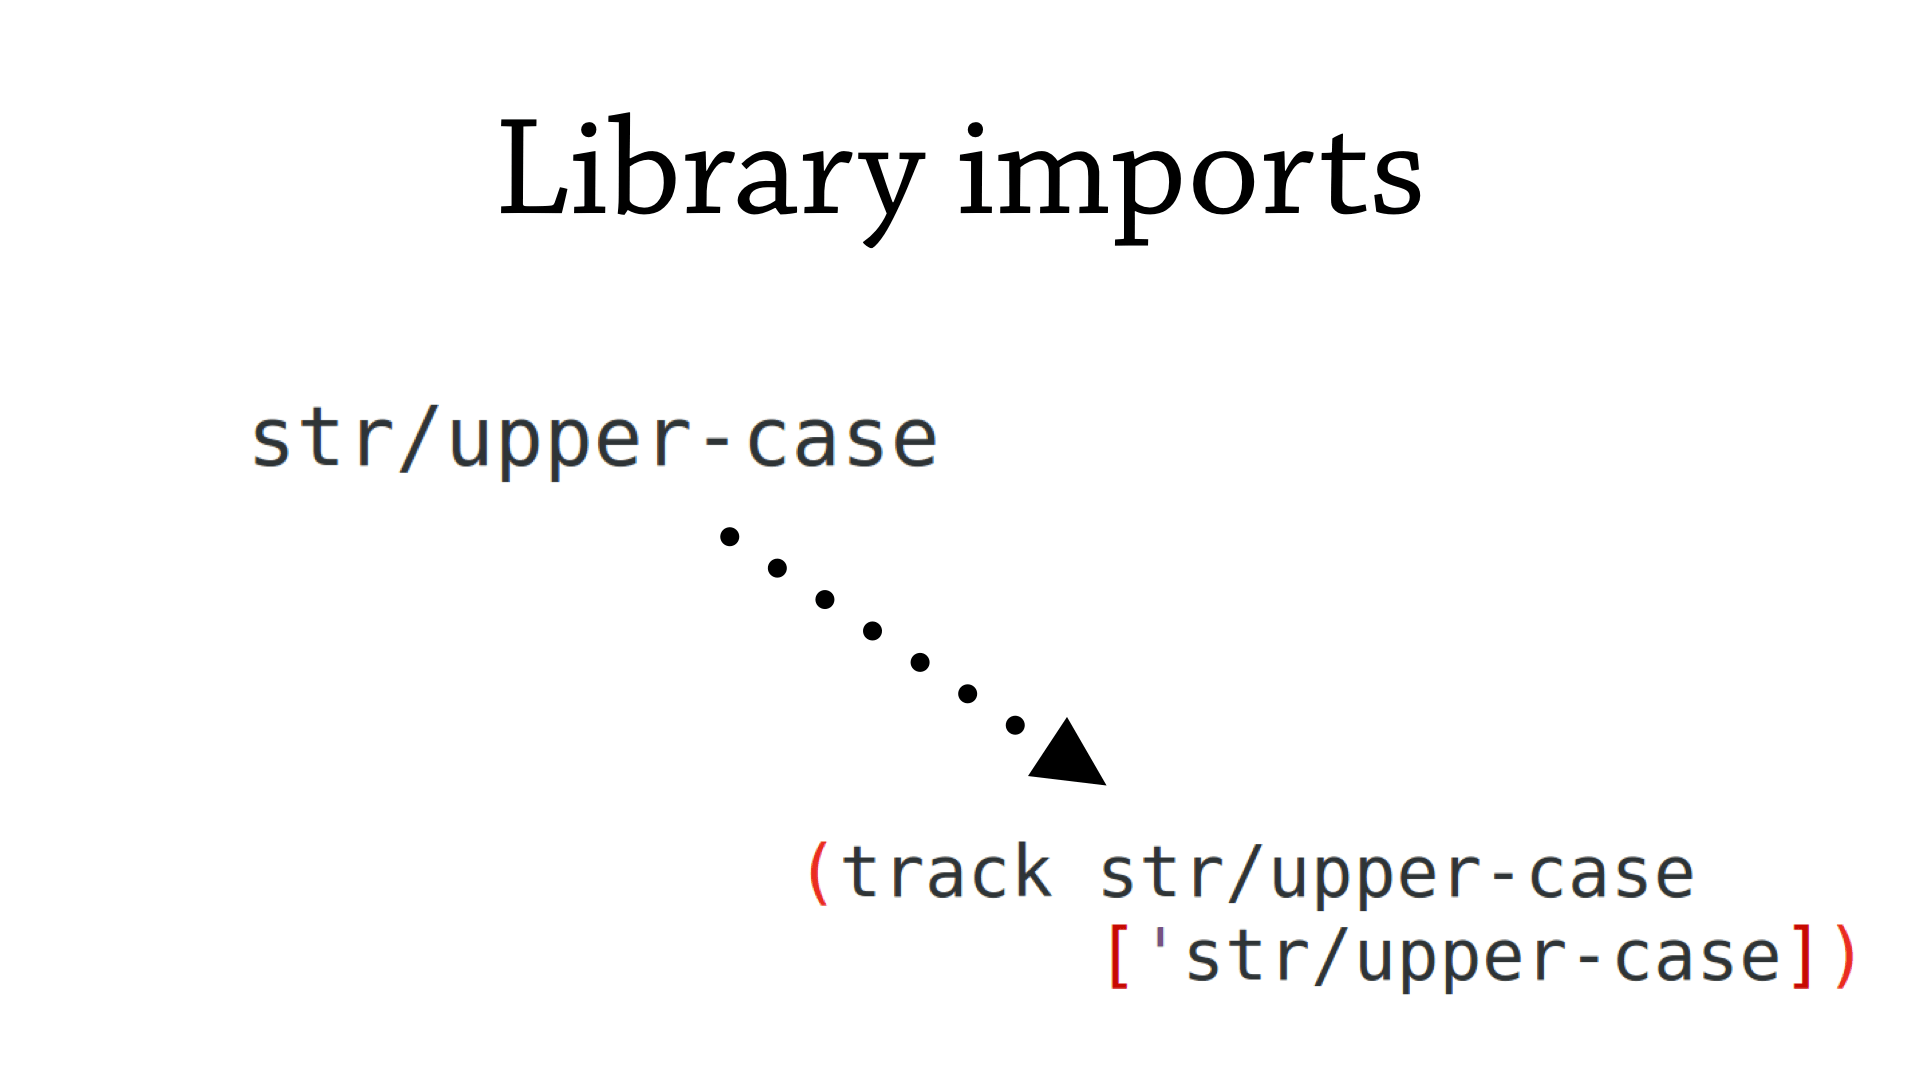 Track library imports